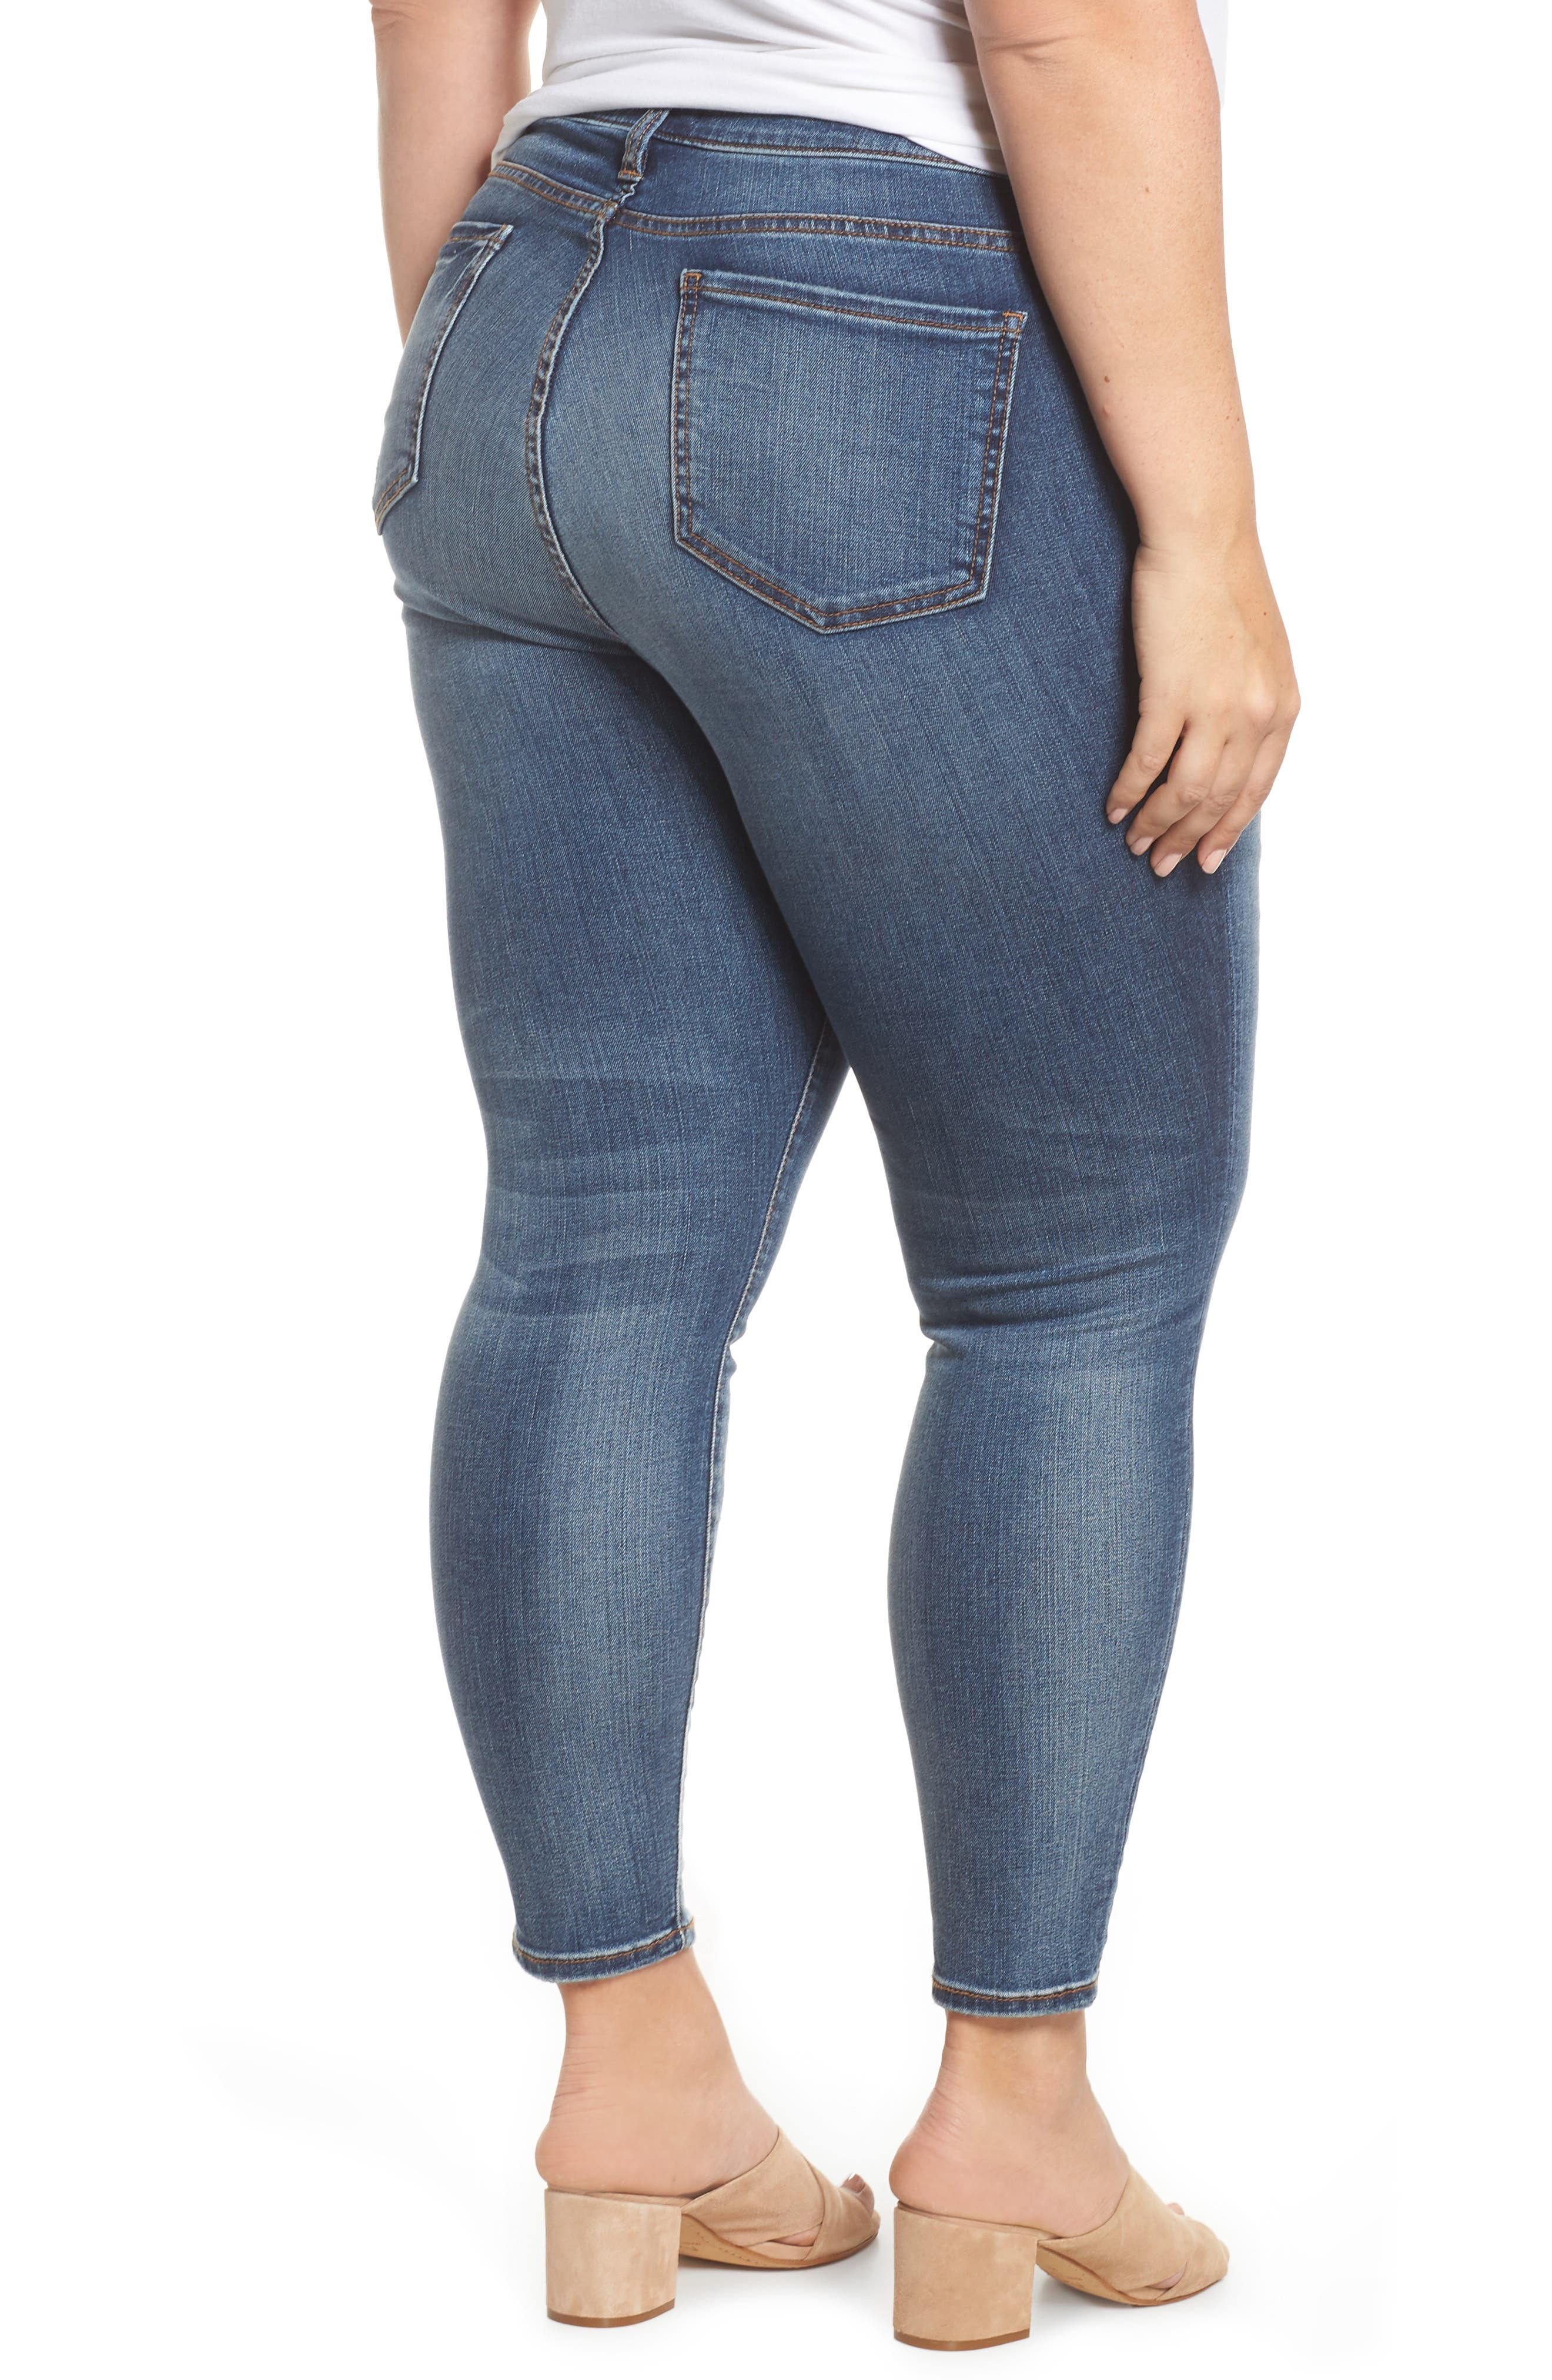 Reese Seam Ankle Skinny Jeans,                             Alternate thumbnail 2, color,                             Poetic